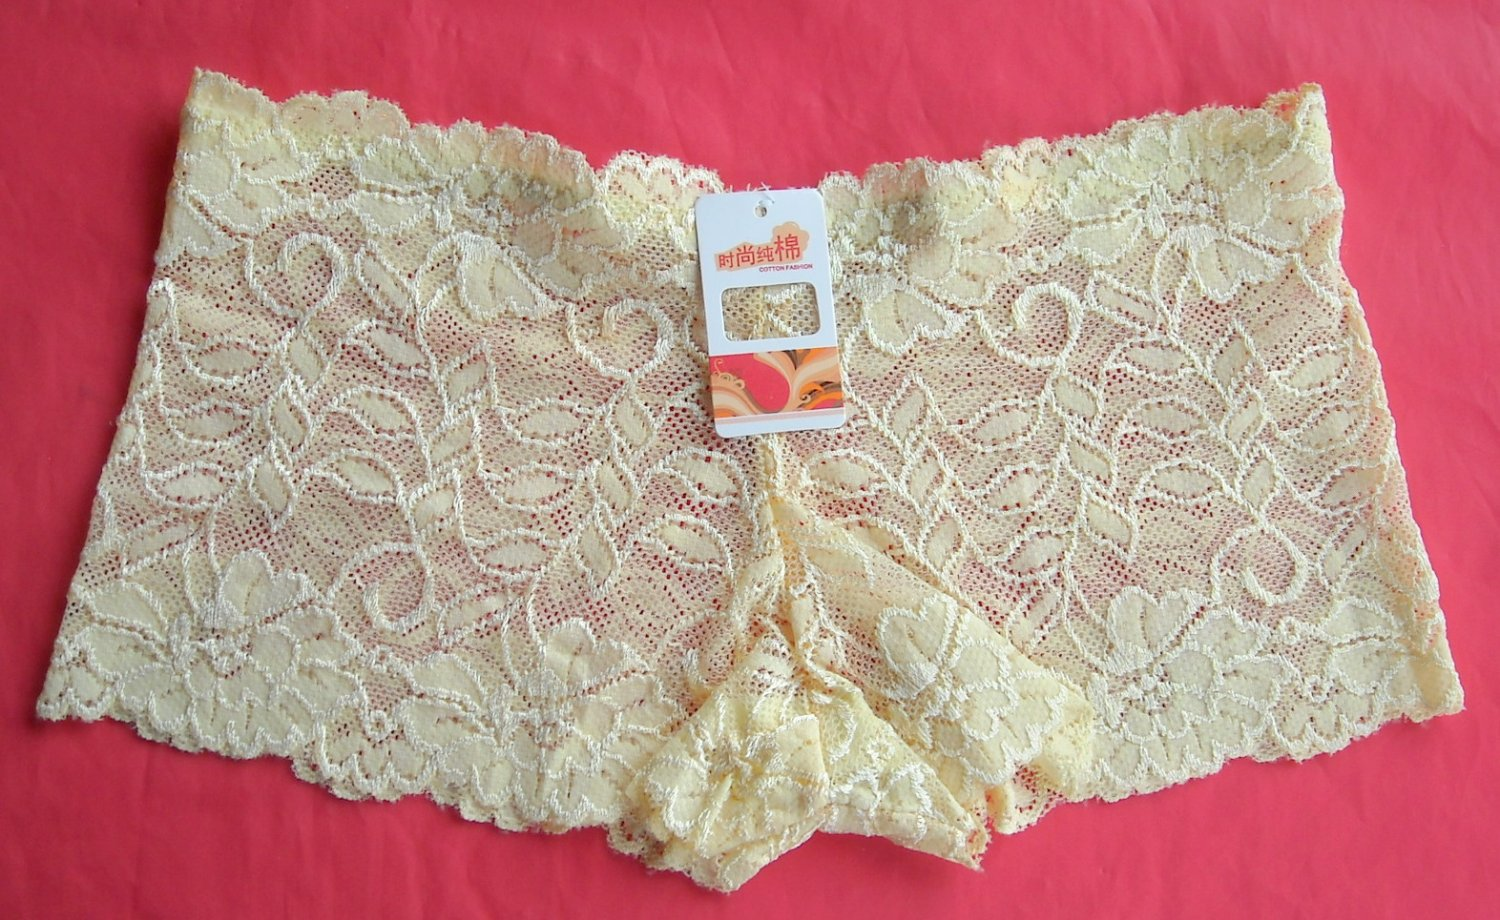 Lot of 3 hipster Lemon openwork lace Boyshorts intimates underwear panties size S NWT